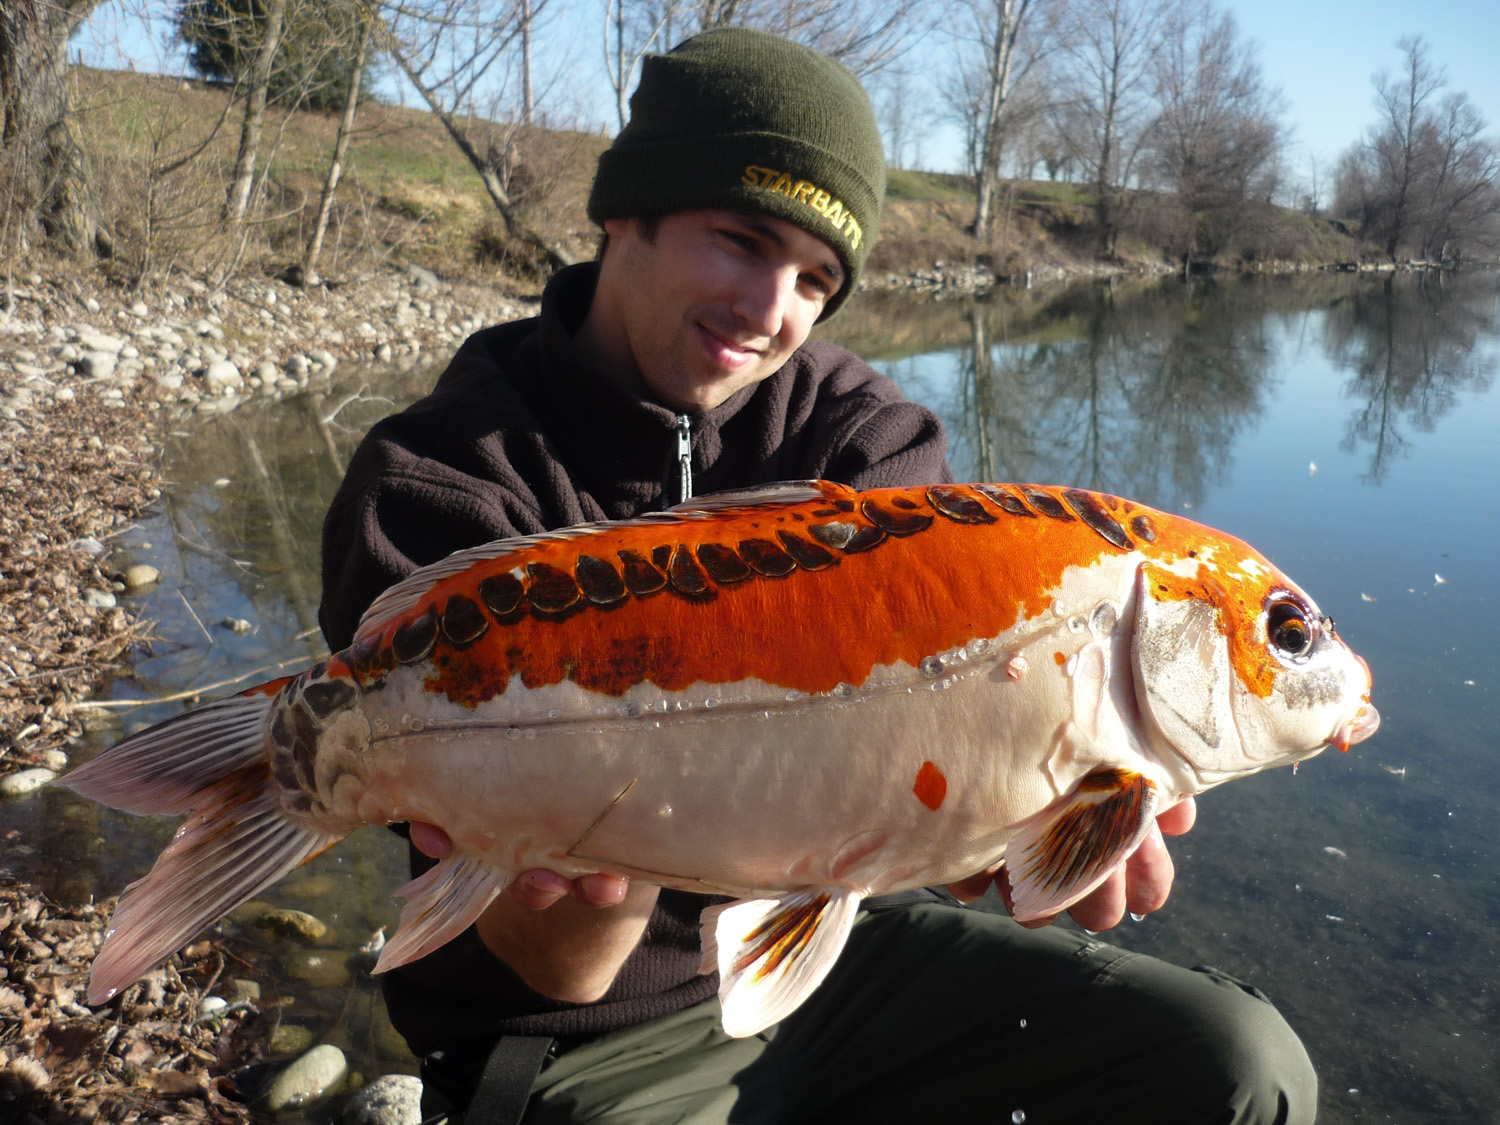 http://www.starbaits.com/fichiers/images/team/gallery/DUCERE_Cedric/16-DUCERE-CEDRIC.JPG